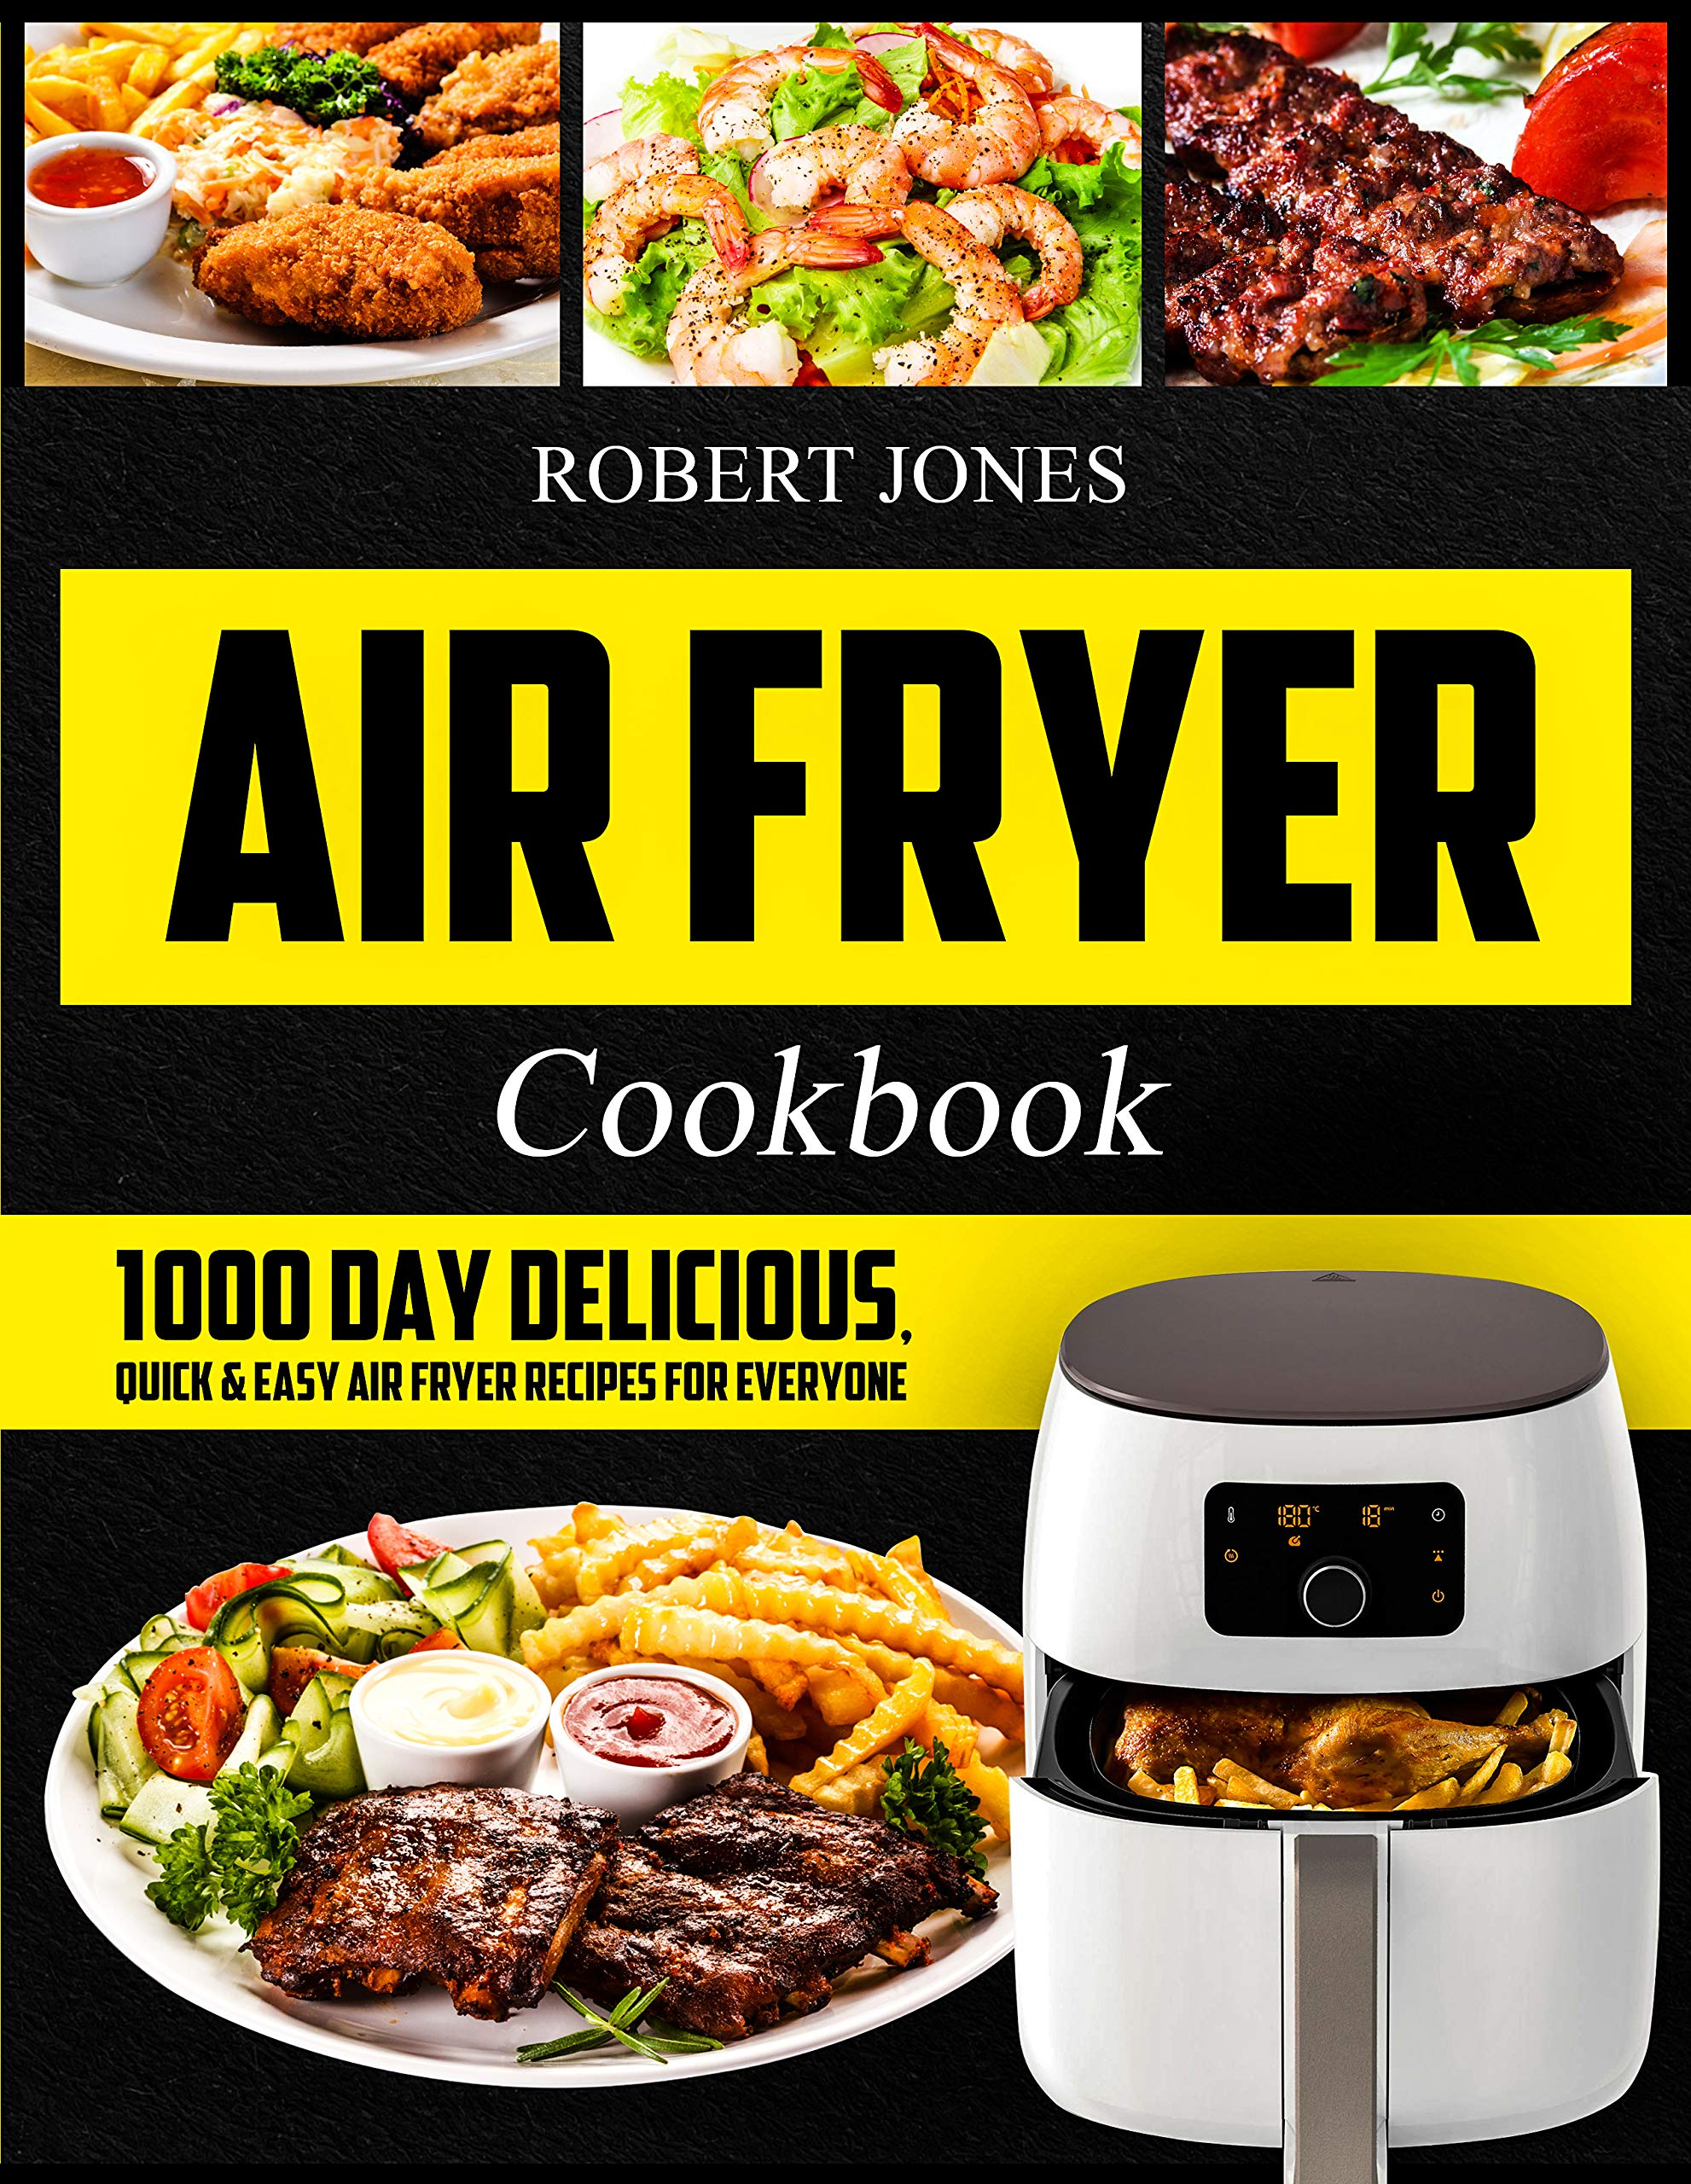 Image OfAir Fryer Cookbook: 1000 Day Delicious, Quick & Easy Air Fryer Recipes For Everyone